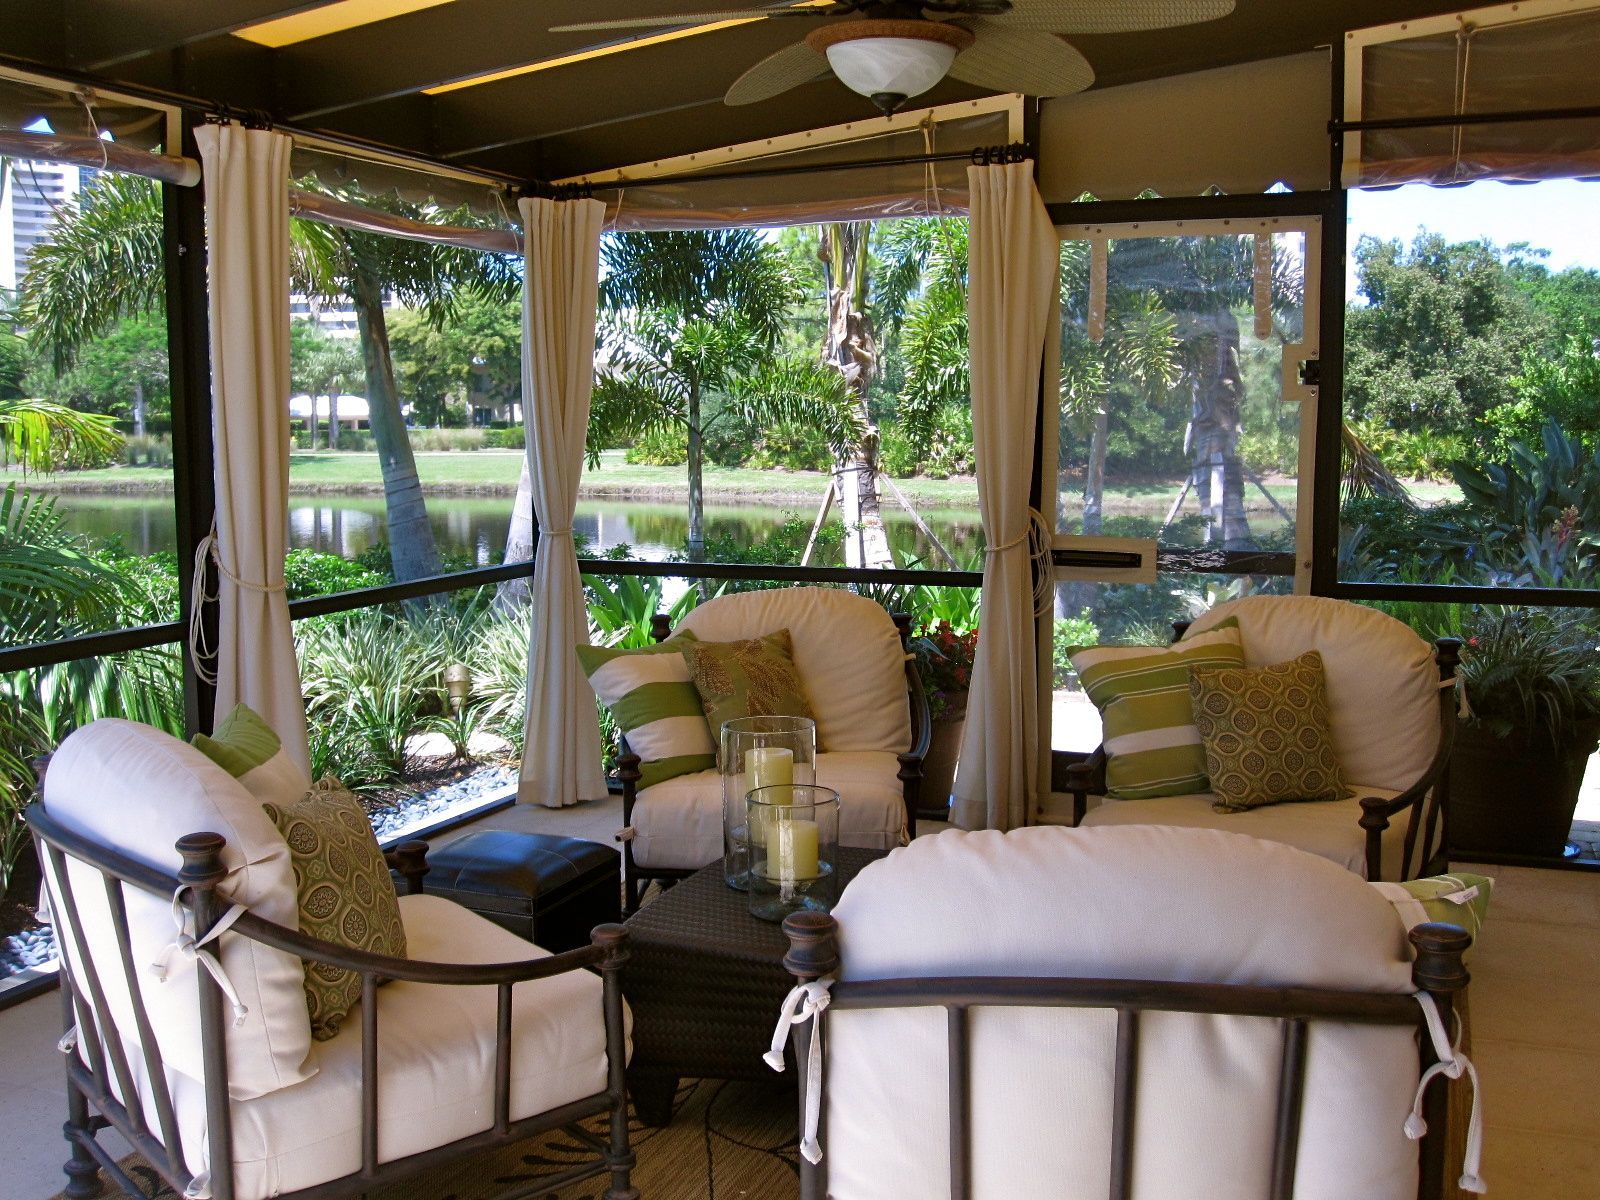 Appealing Patio Lanai Decorating Ideas With Wicker Rattan